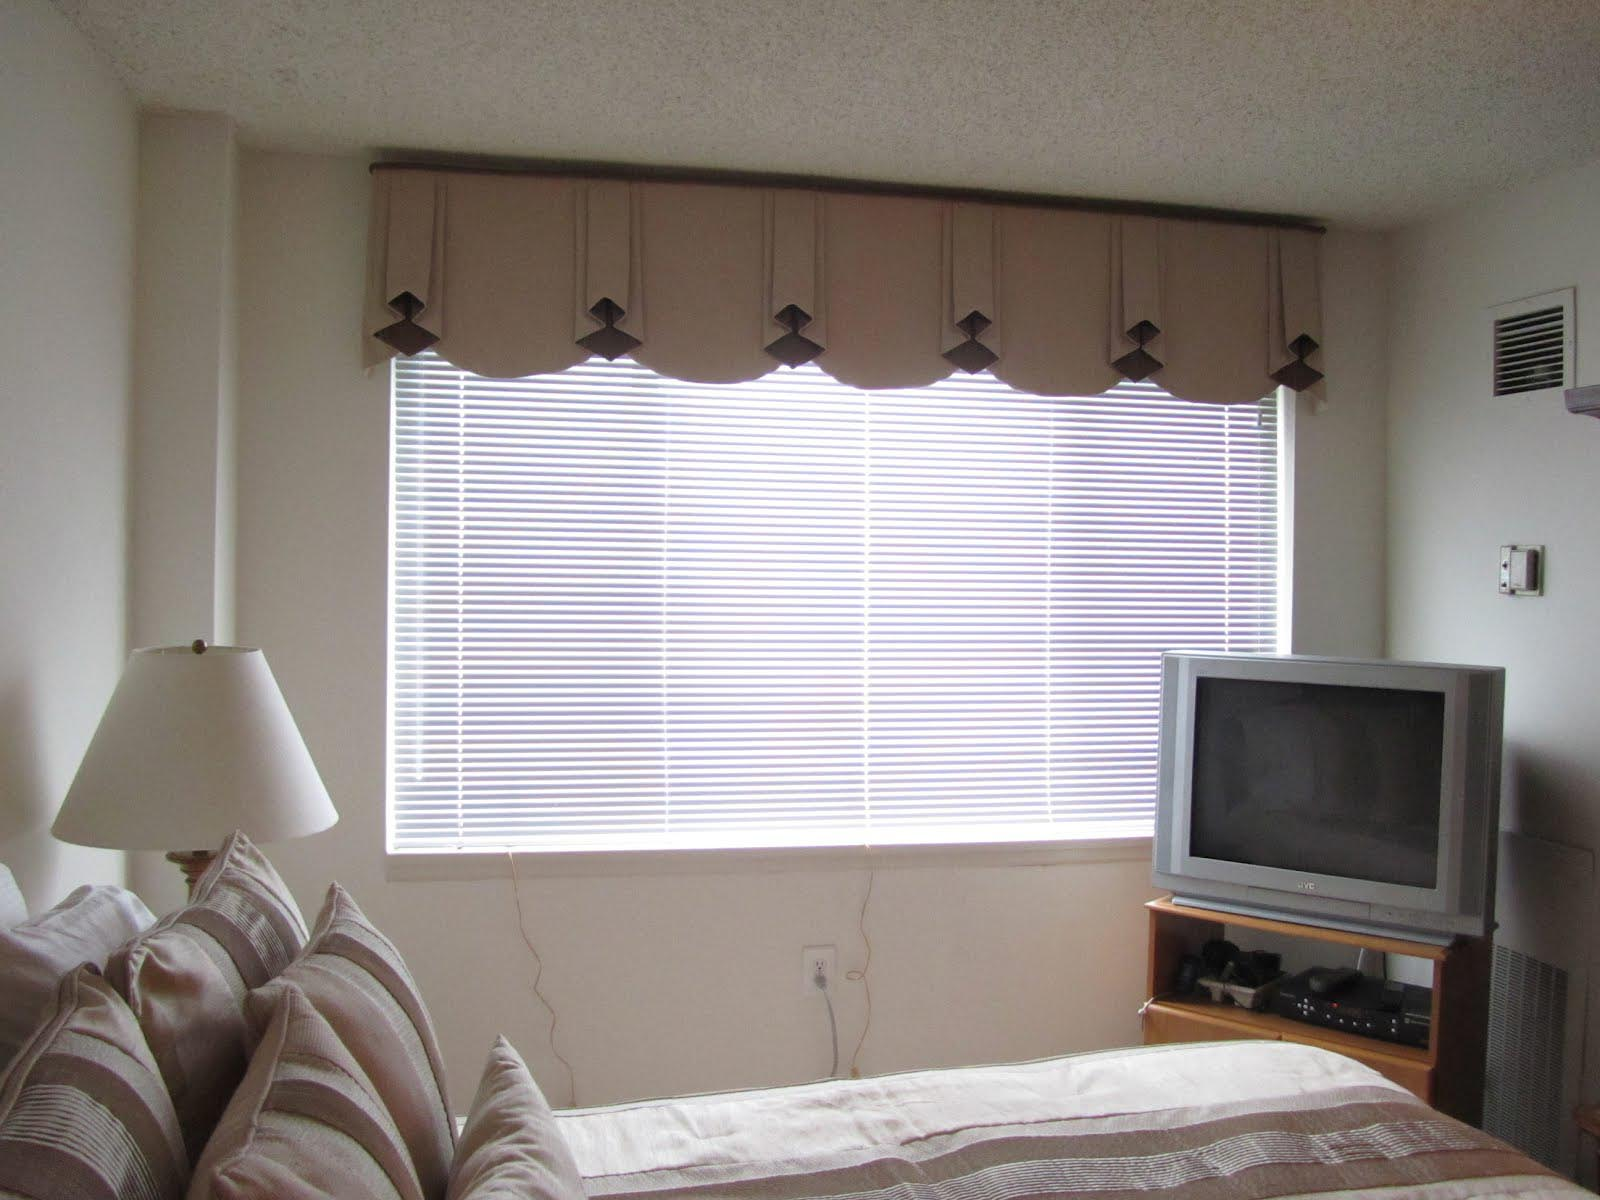 Valances for bedroom luxury attribute of room window treatments design ideas Window coverings for bedrooms